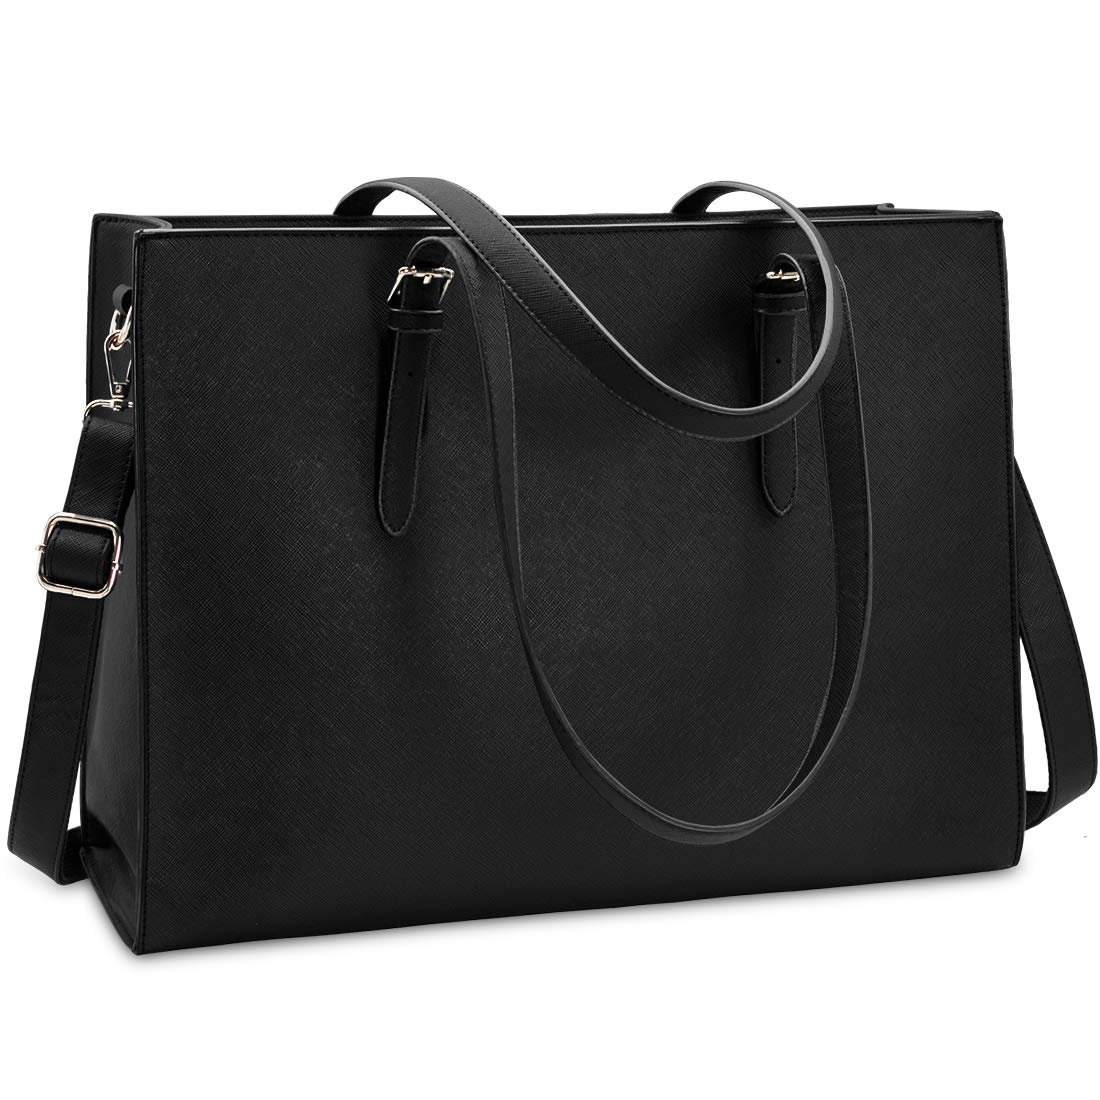 Laptop Bag for Women Waterproof Lightweight Leather 15.6 Inch Computer Tote Bag Business Office Briefcase Large Capacity Handbag Shoulder Bag Professional Office Work Bag Black by NUBILY